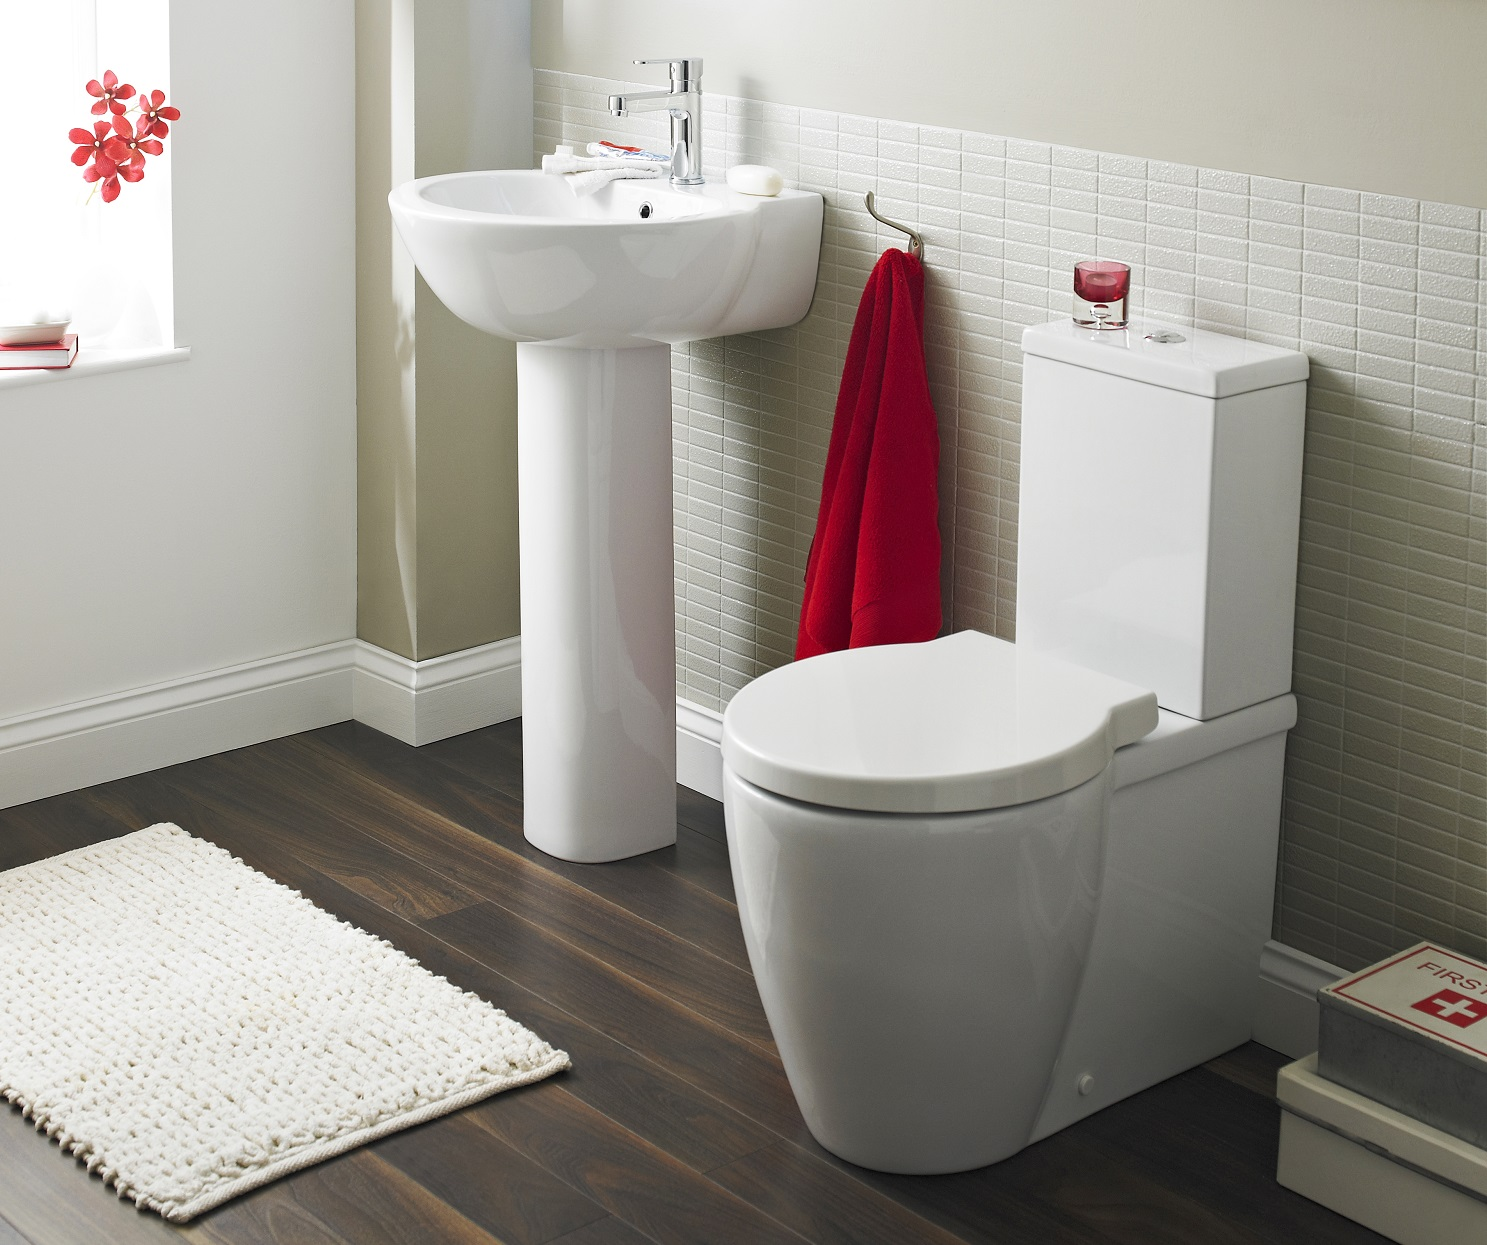 Toilets - How to Choose the Perfect One - BigBathroomShop